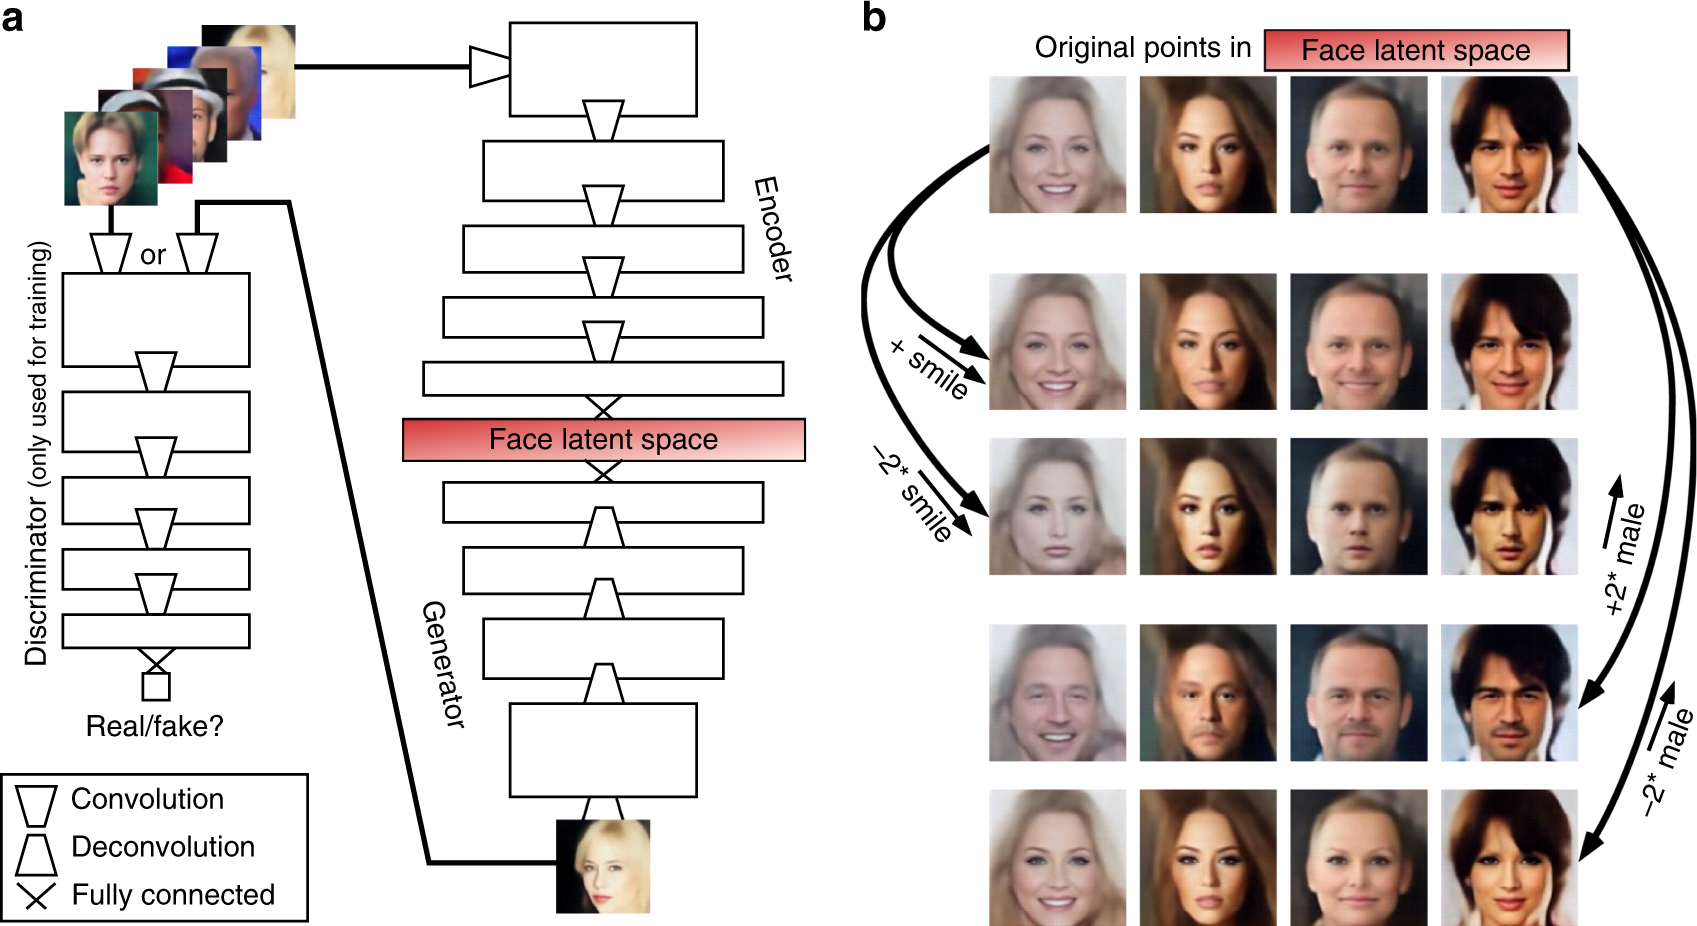 Reconstructing faces from fMRI patterns using deep